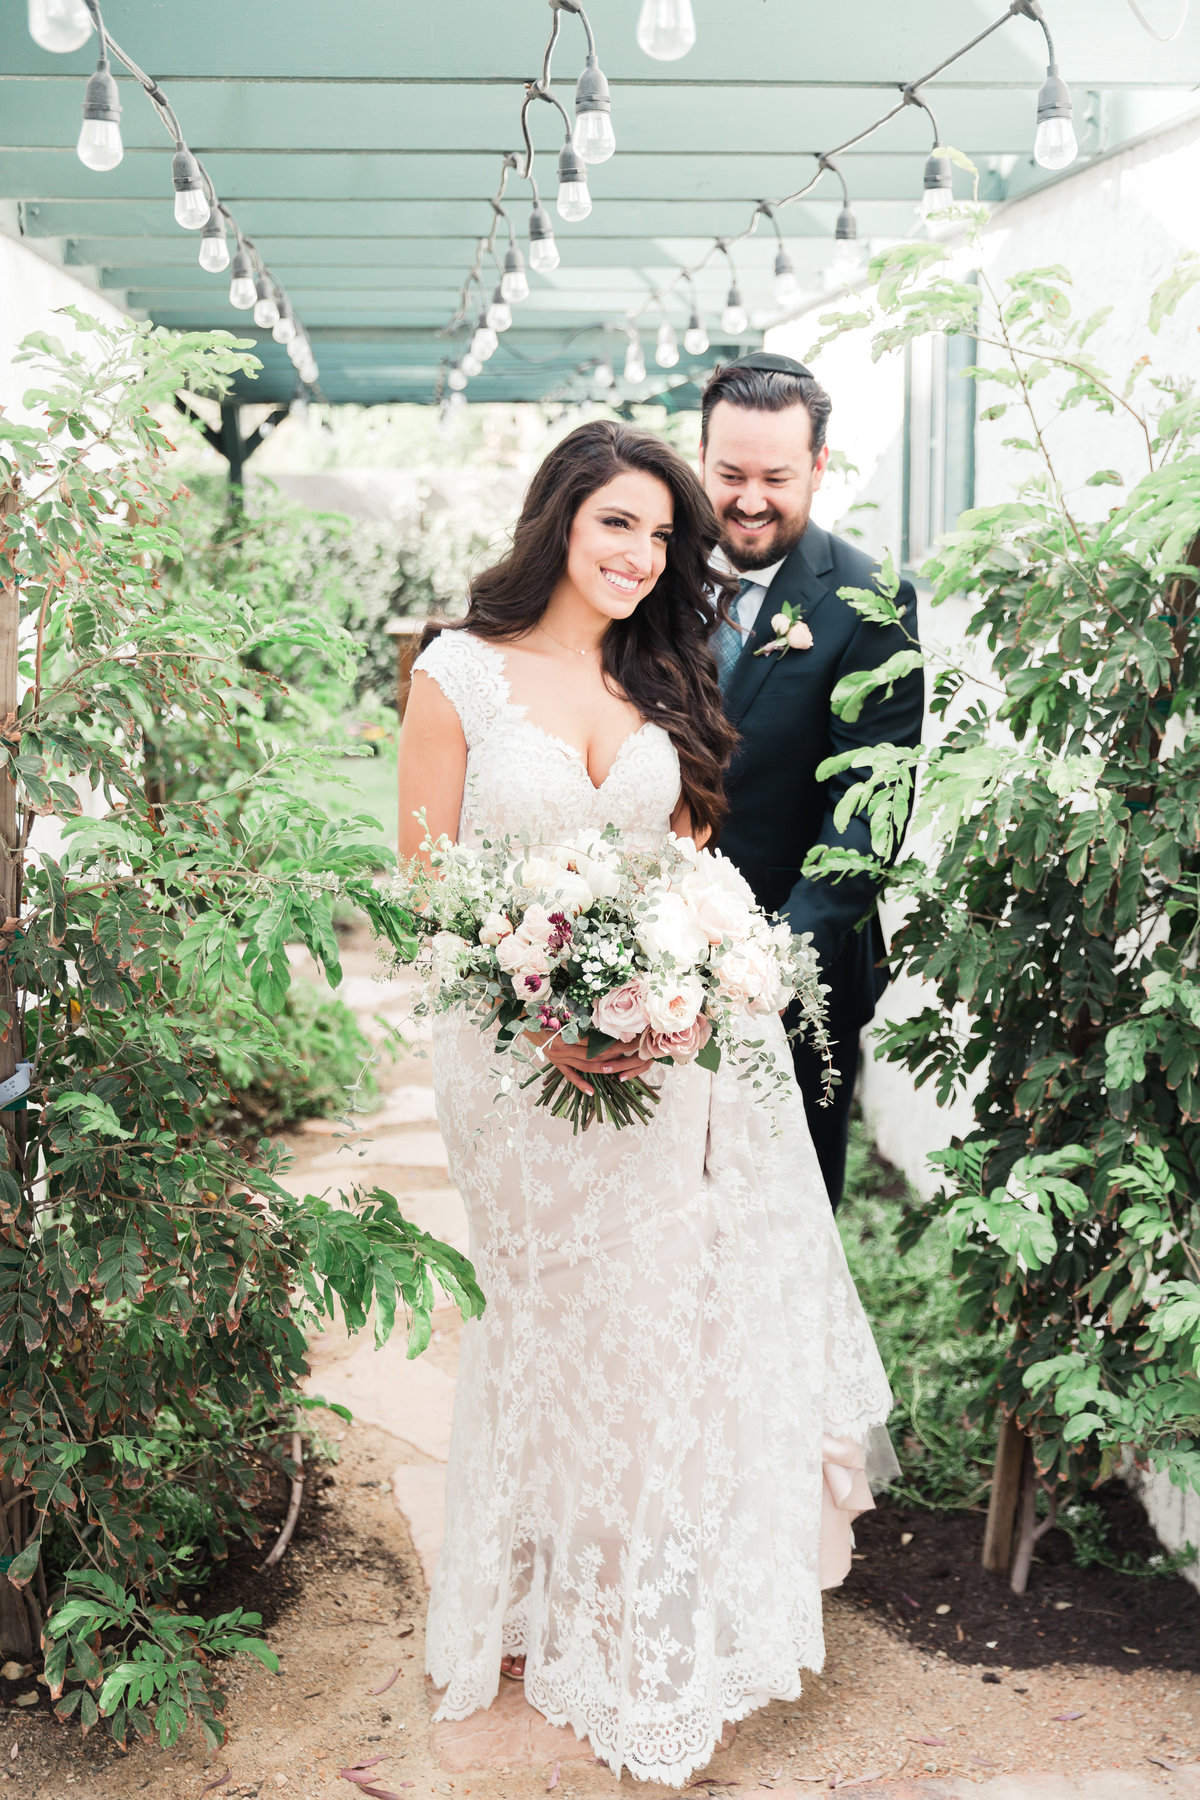 a photo of a bride and groom in their backyard wedding in Las Vegas with a lace dress and a lush floral bridal bouquet